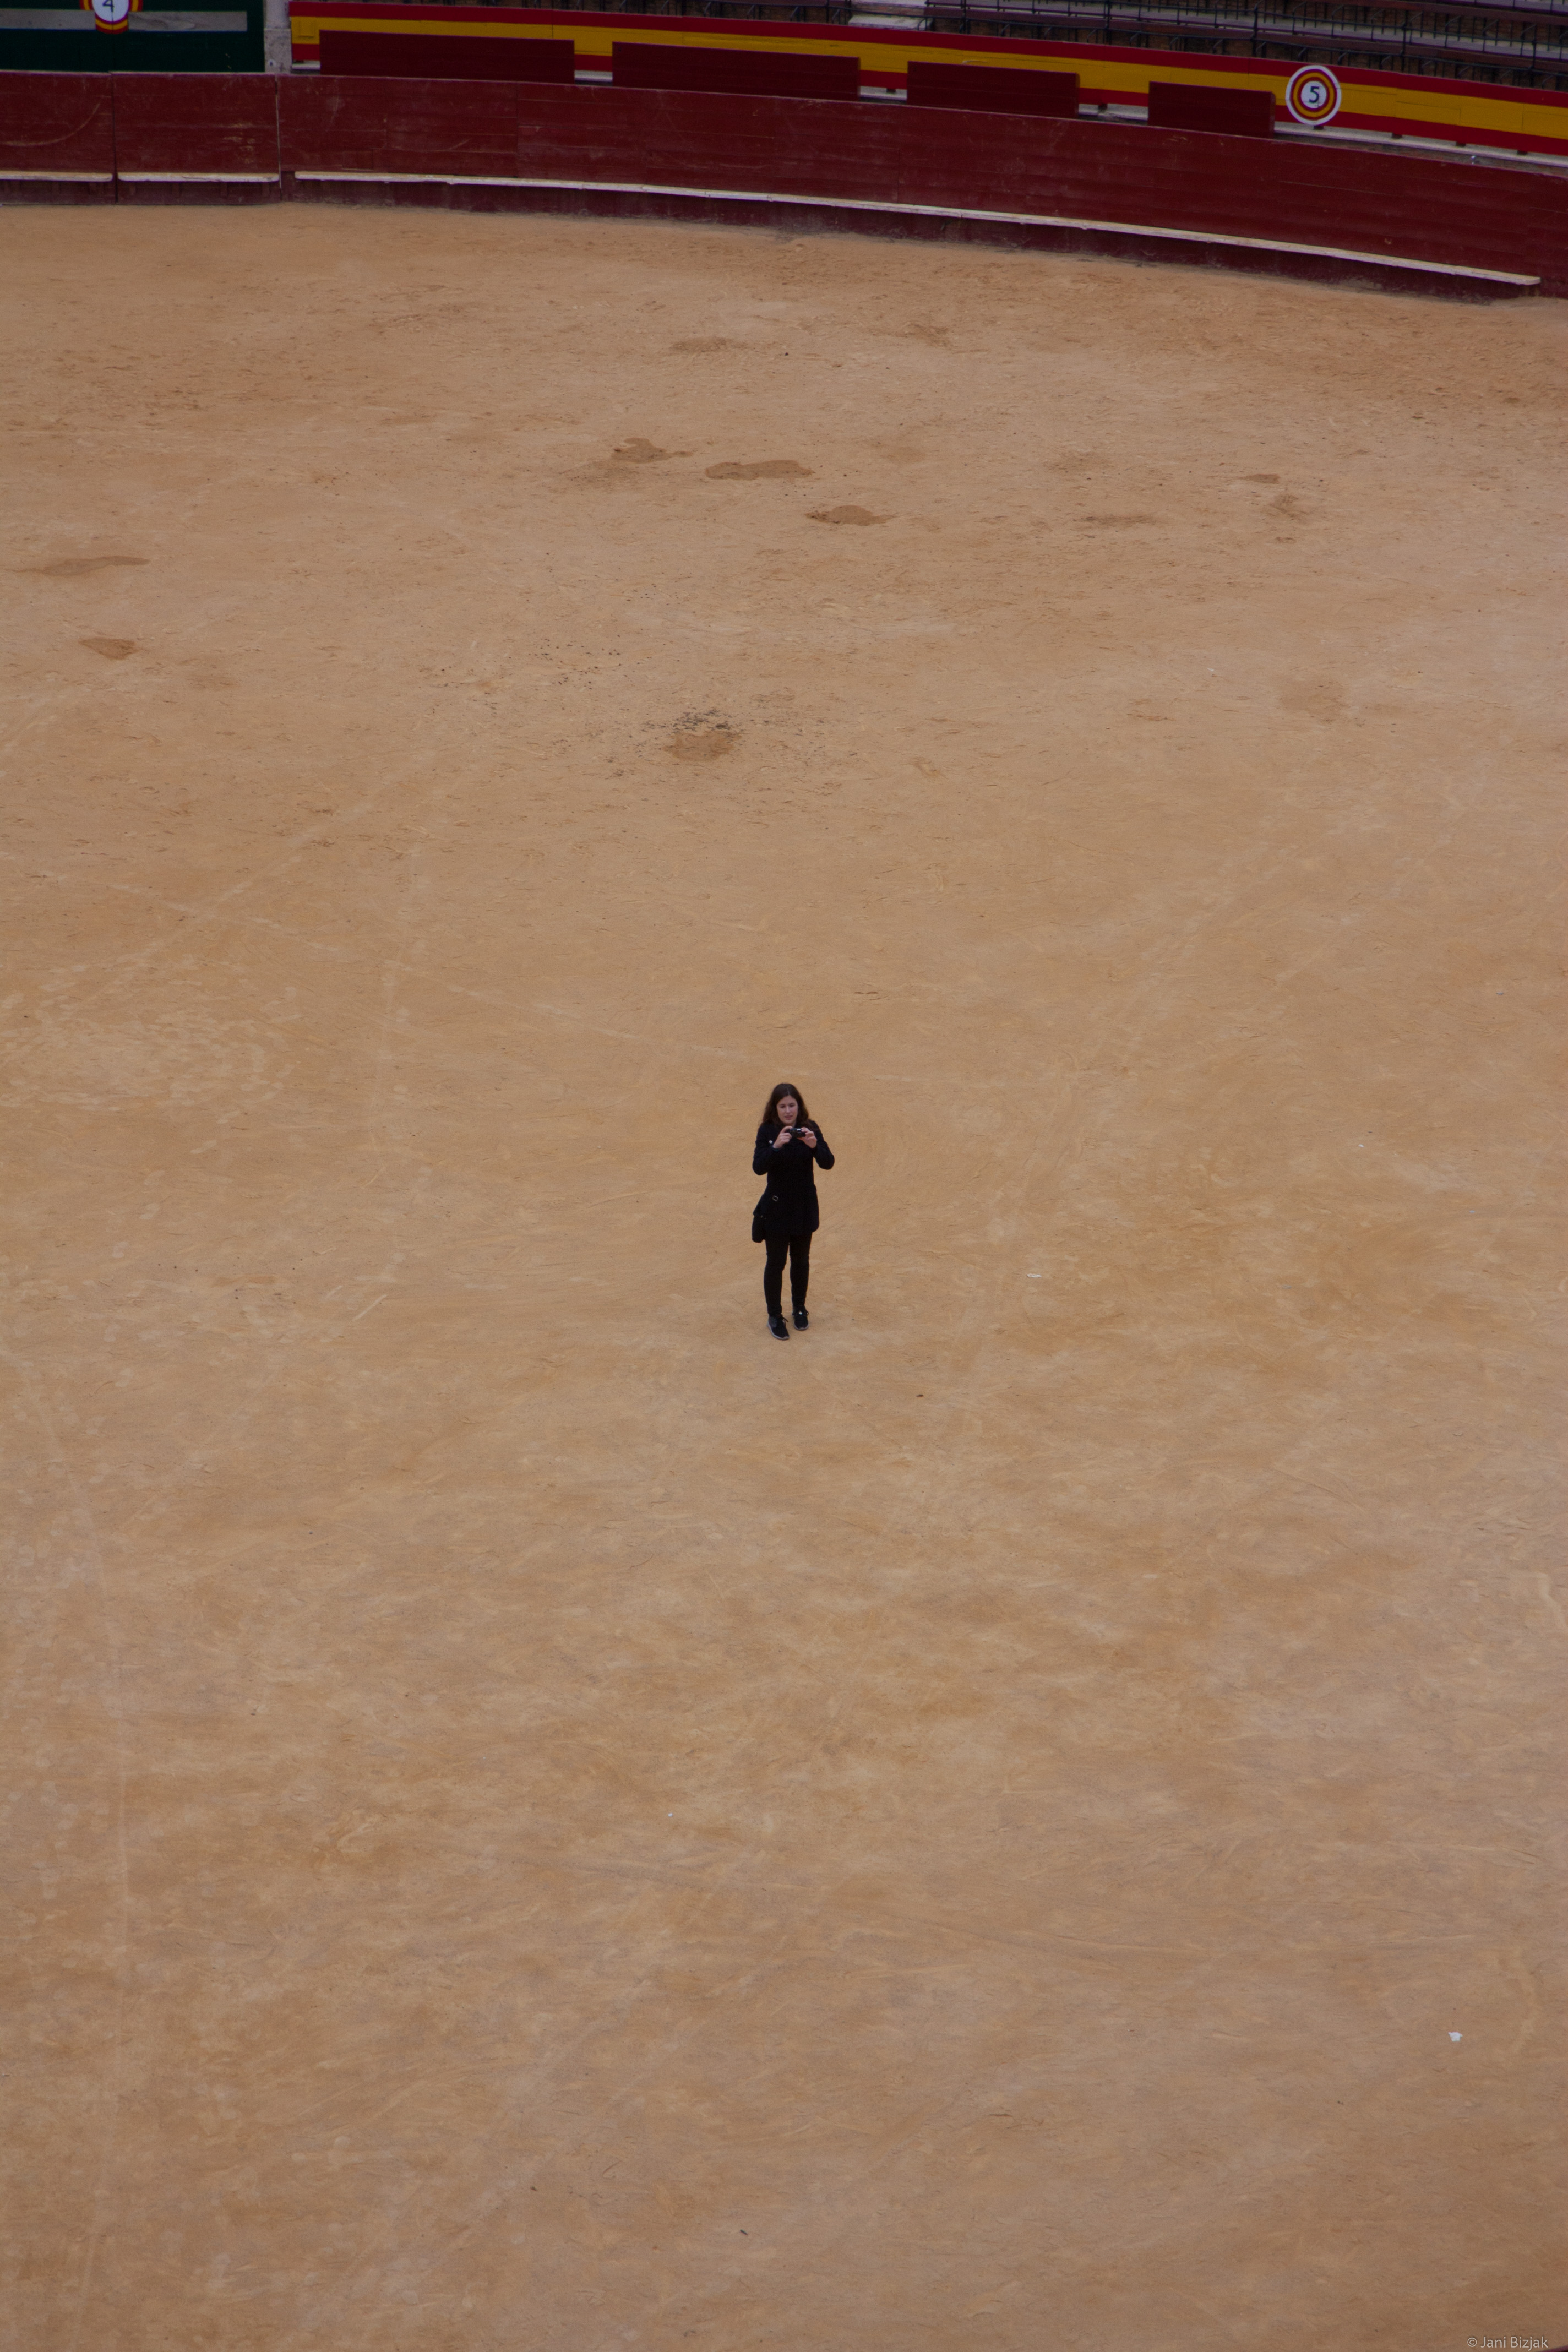 Veronika in the middle of arena